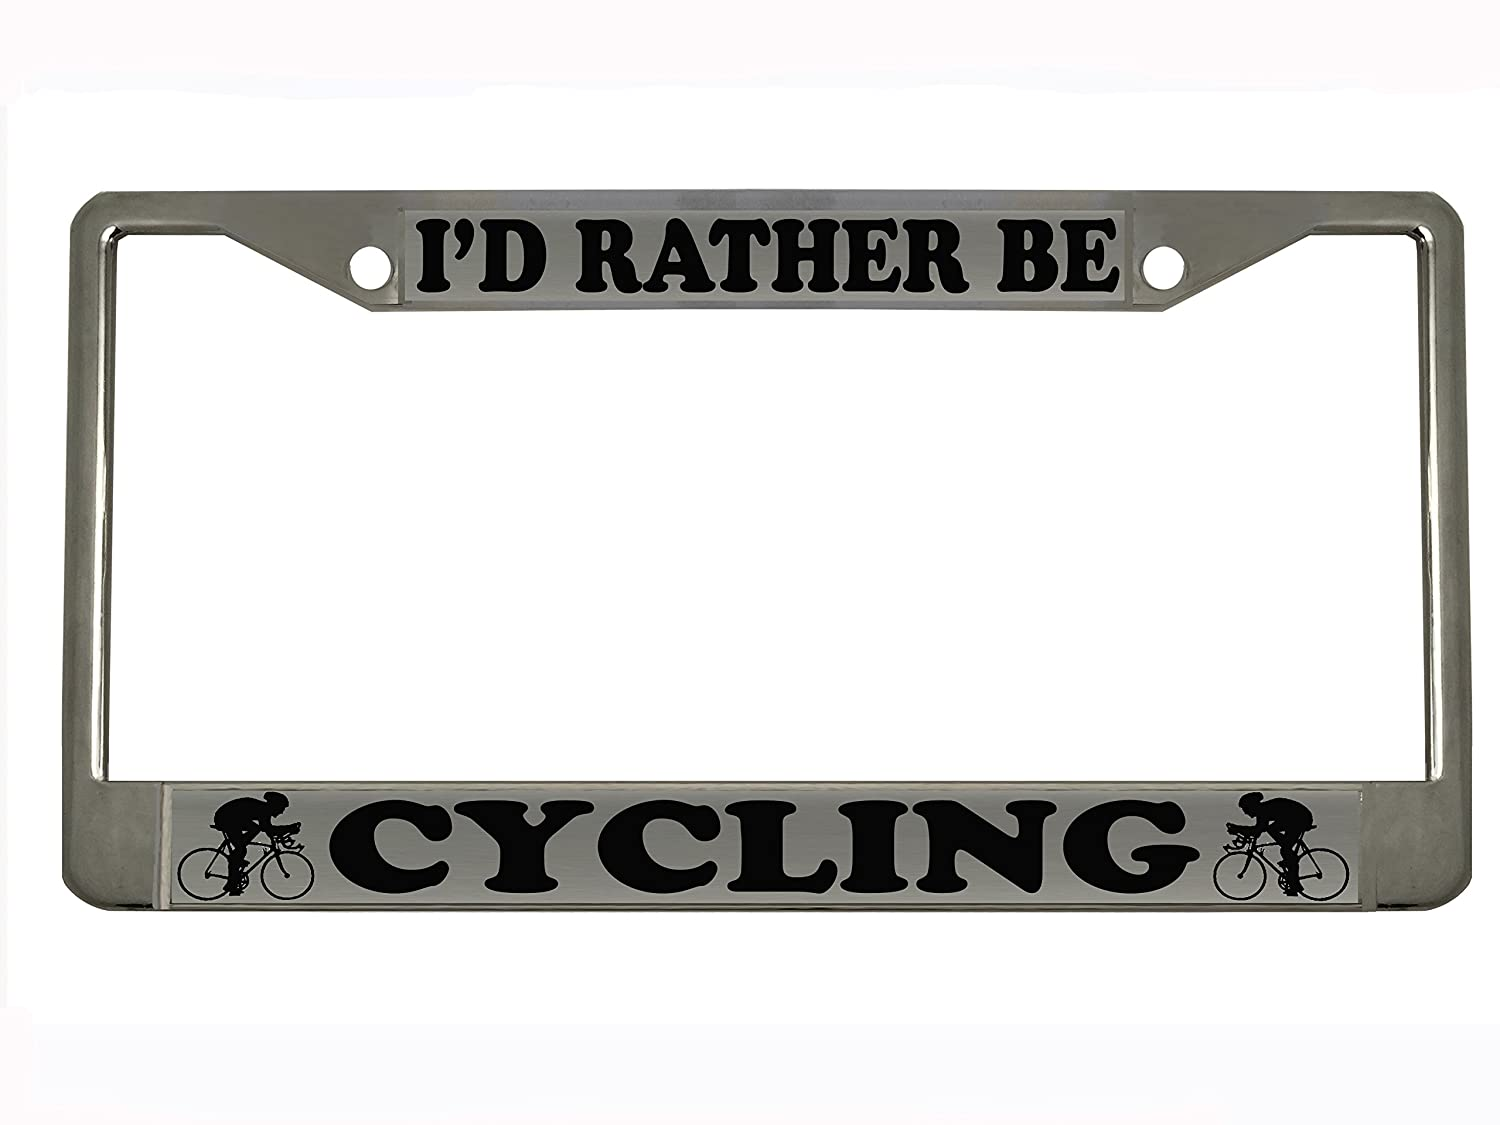 Id Rather be Cycling Chrome Metal Auto License Plate Frame Car Tag Holder